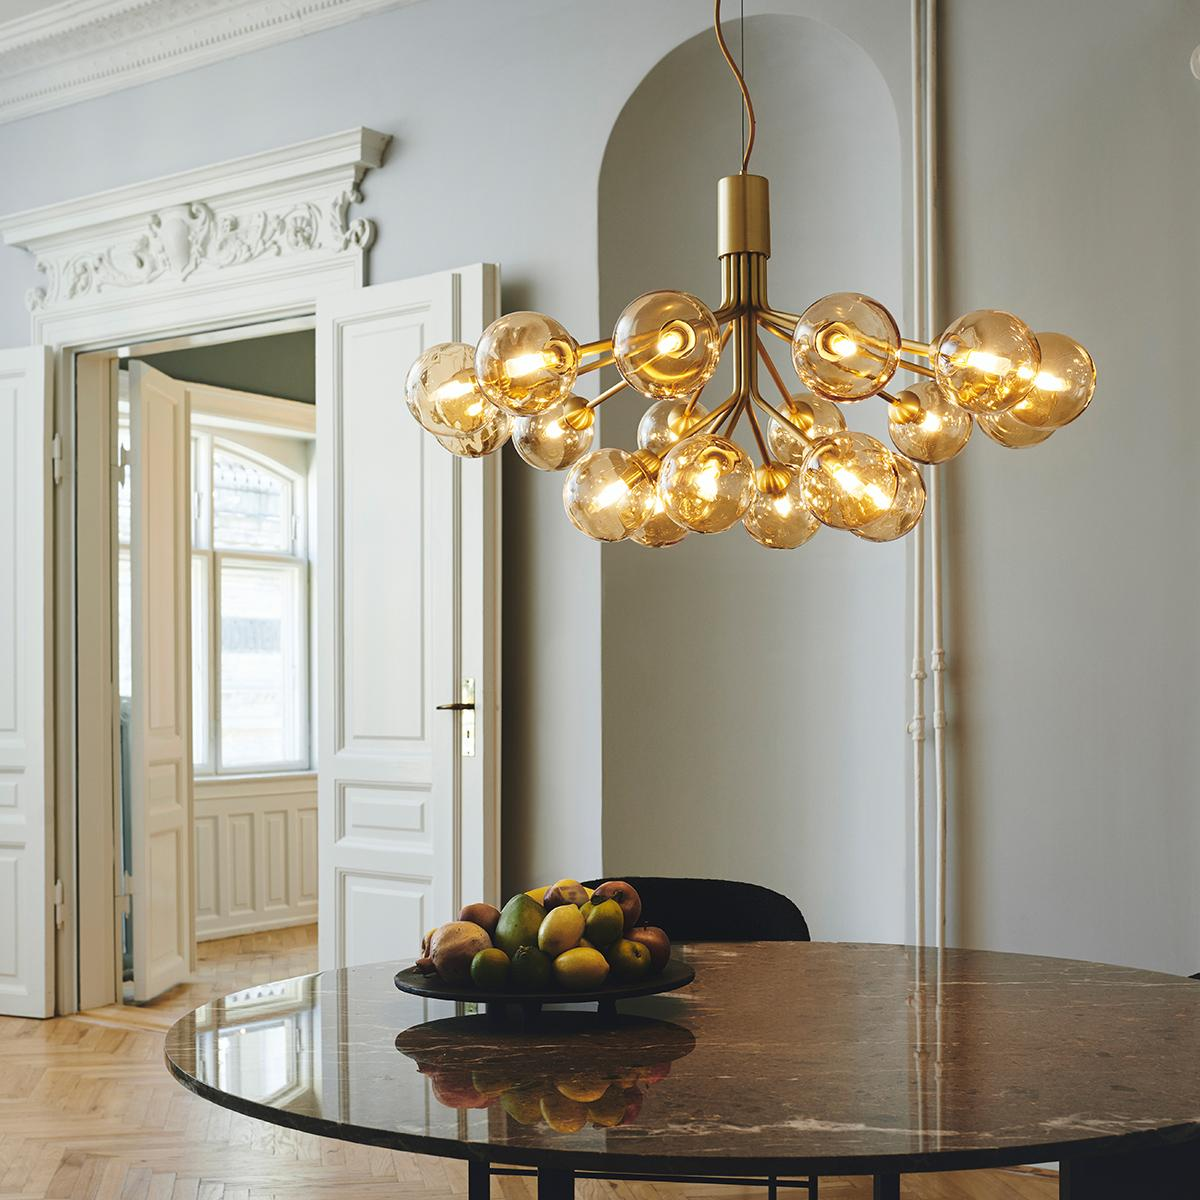 nuura-apiales-18-chandelier-brushed-brass-insitu-2-1200